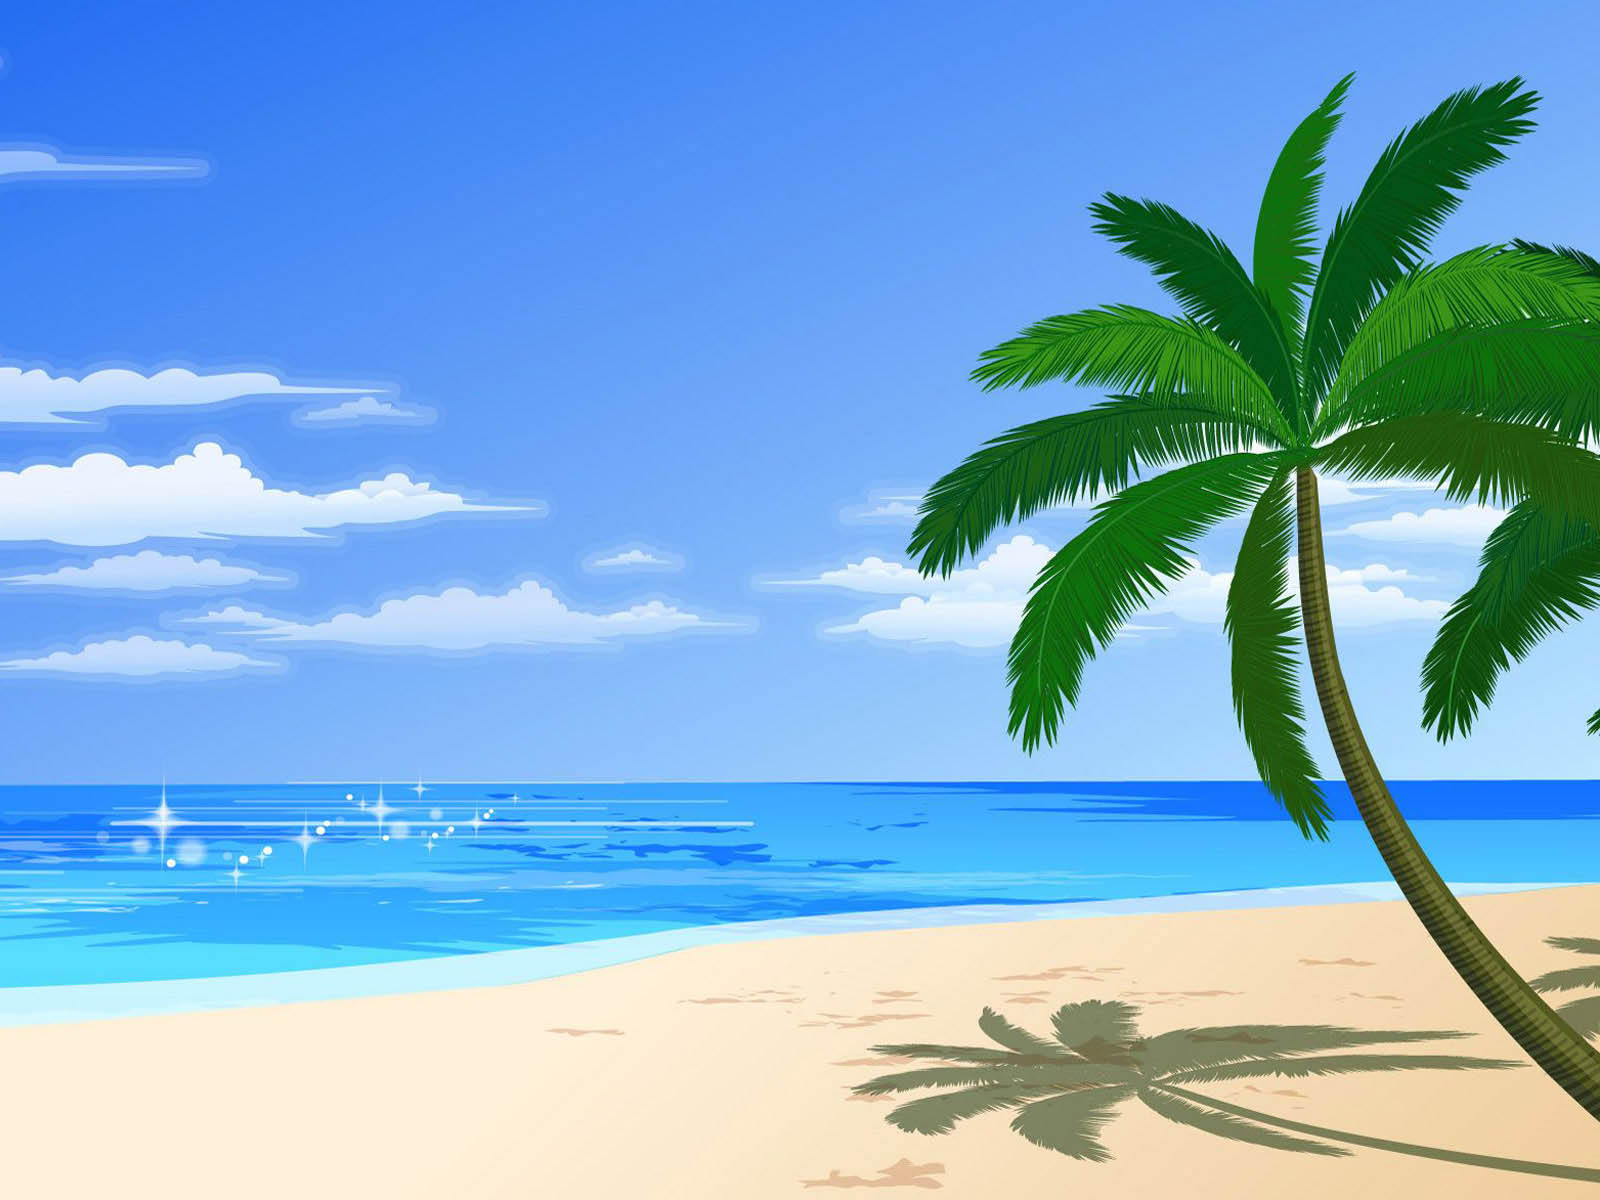 Clip art beach ClipartAndScrap.